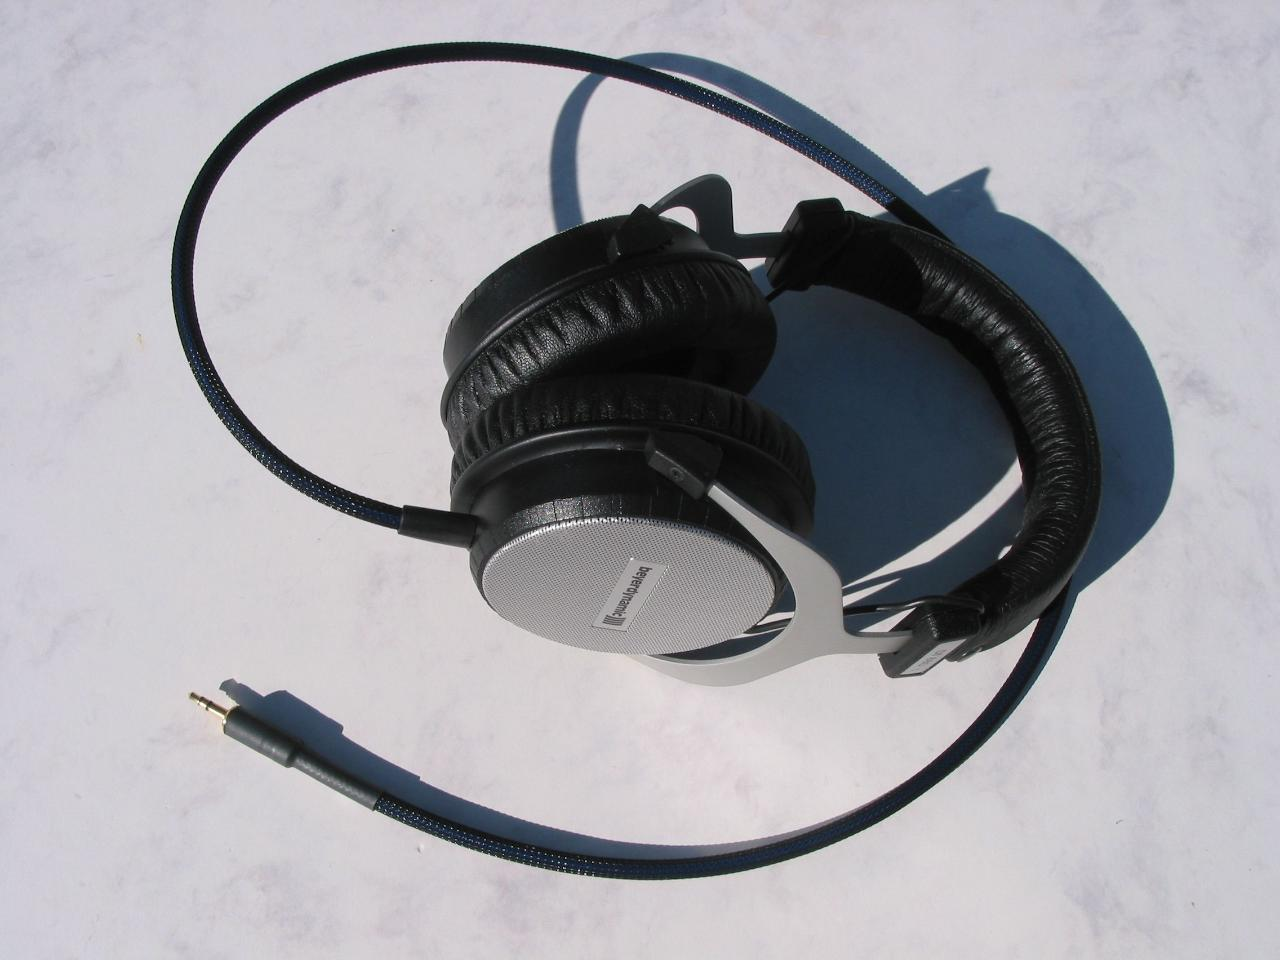 Beyerdynamic DT880 headphones with Moon Audio Blue Dragon V2 Headphone Cable <br />